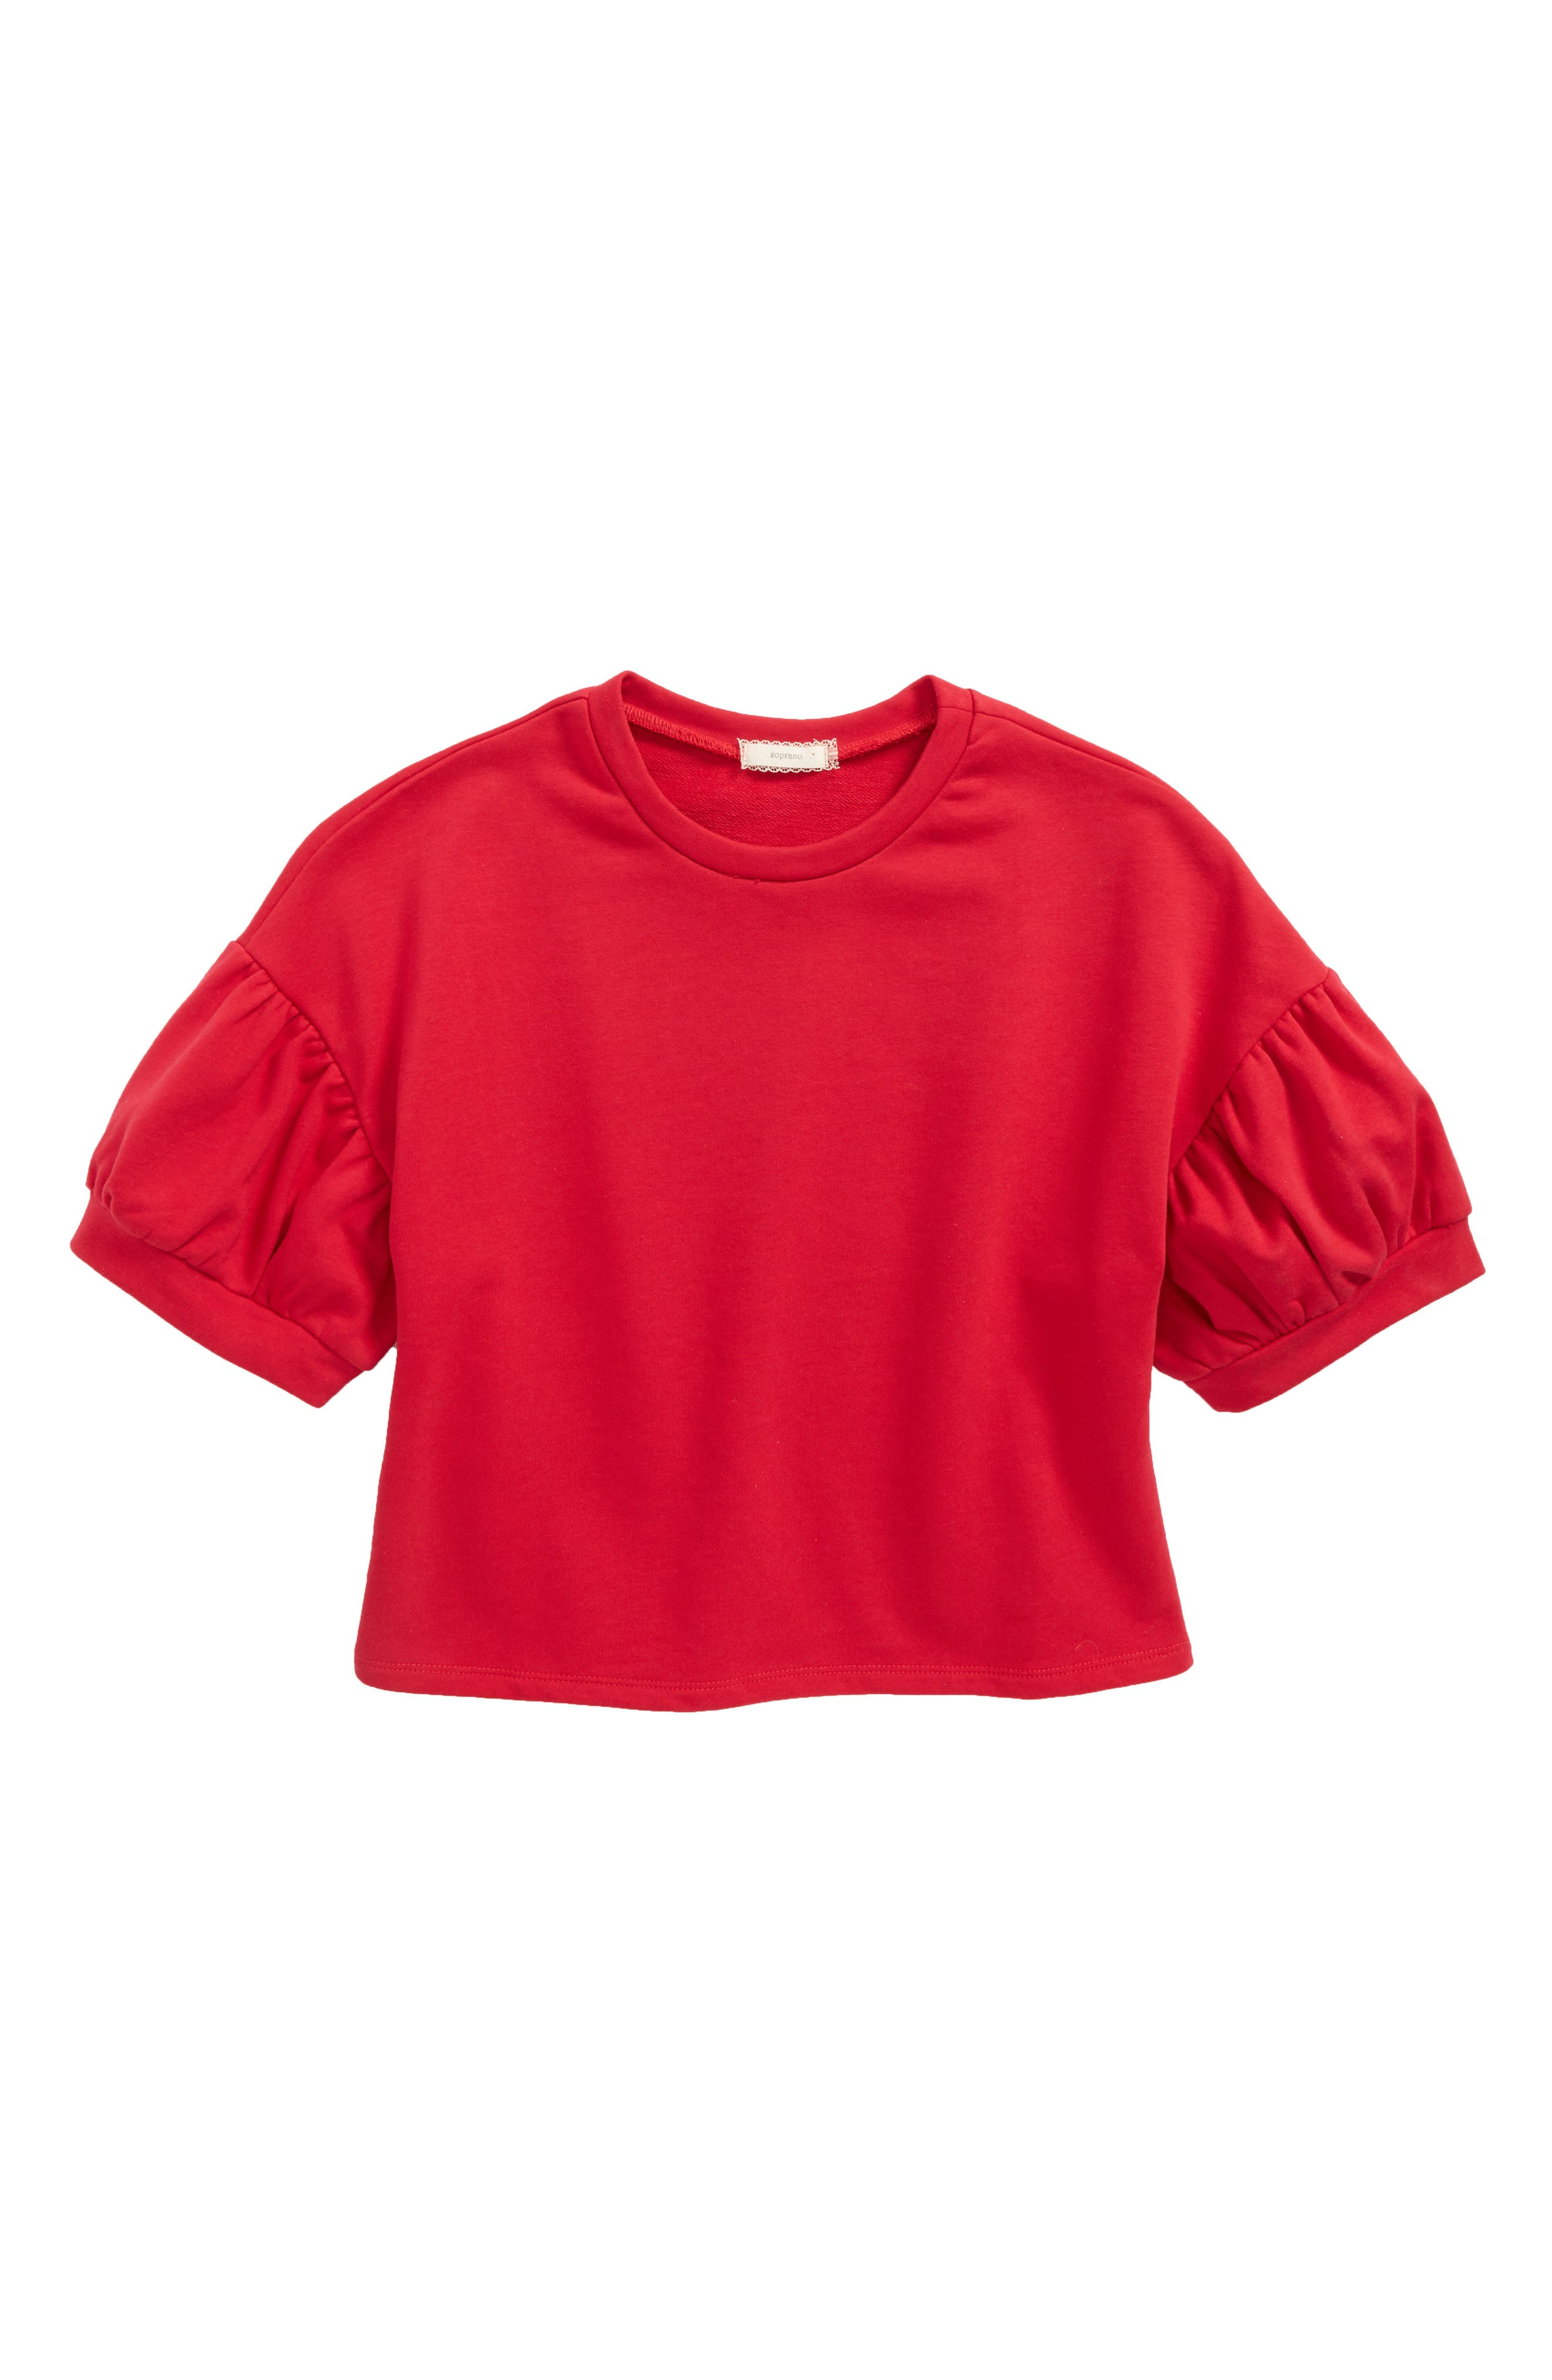 Lantern Sleeve Top,                             Main thumbnail 1, color,                             Red